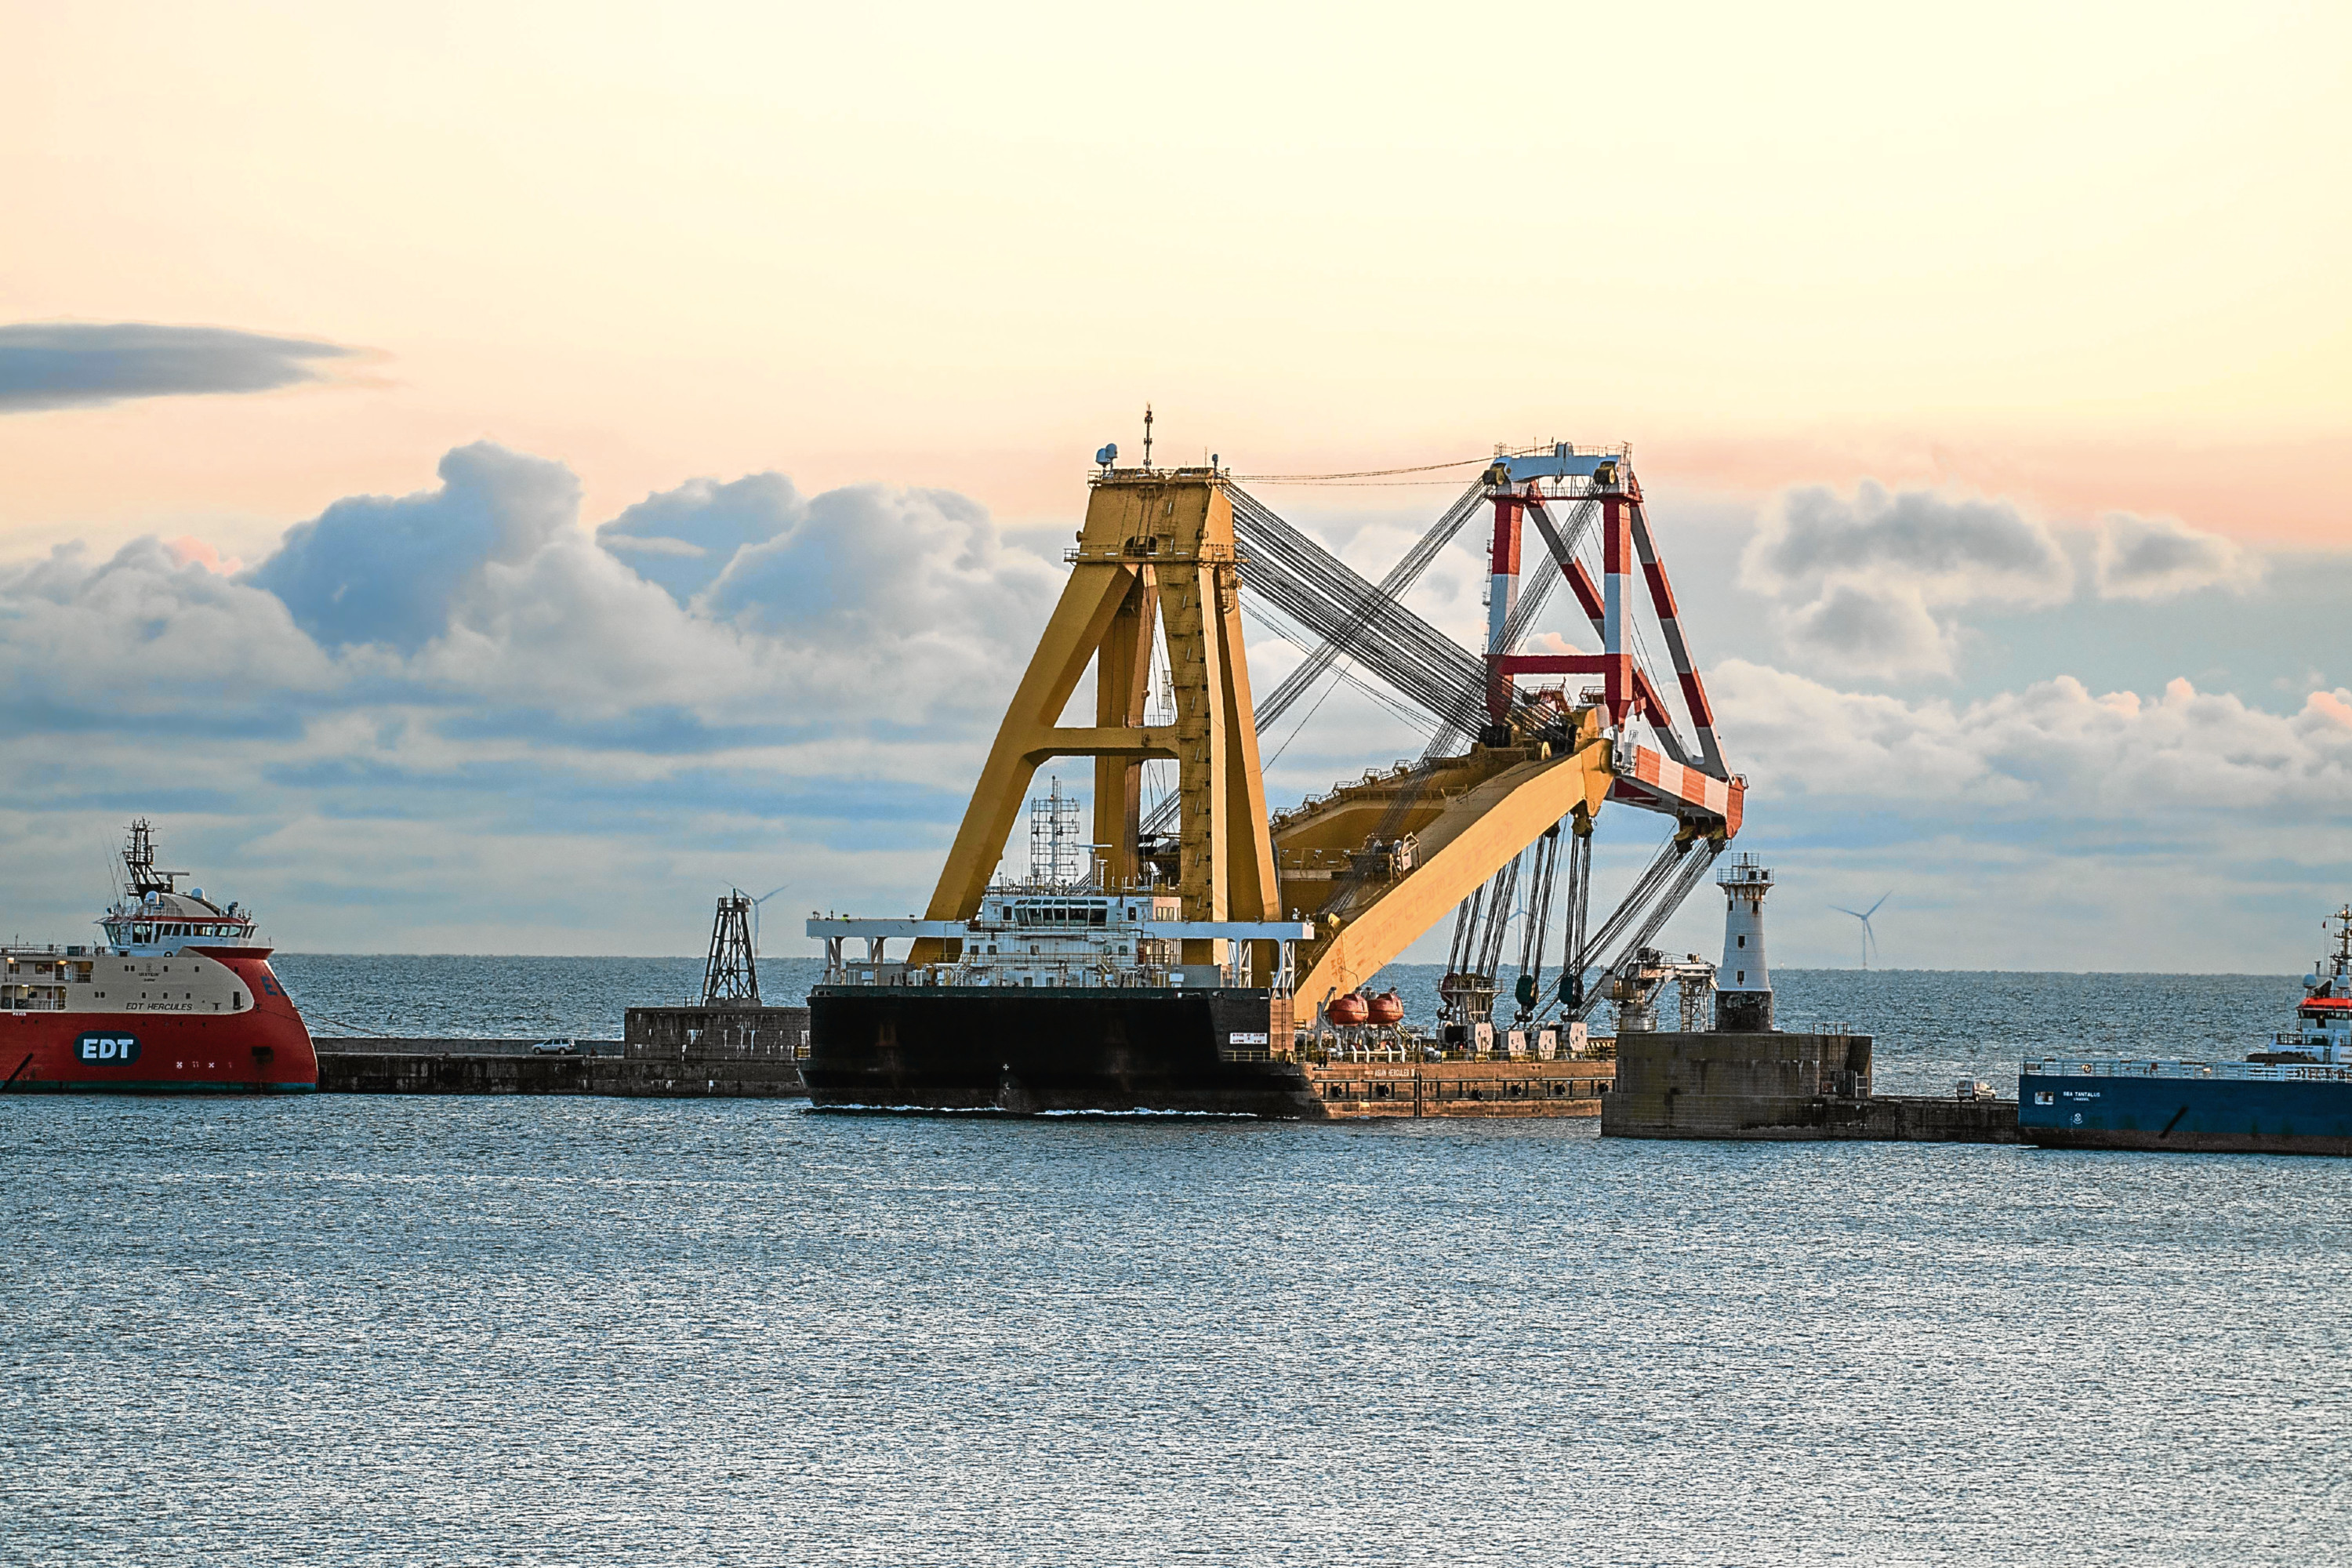 One of the world's largest and most versatile floating cranes arrived in Peterhead.